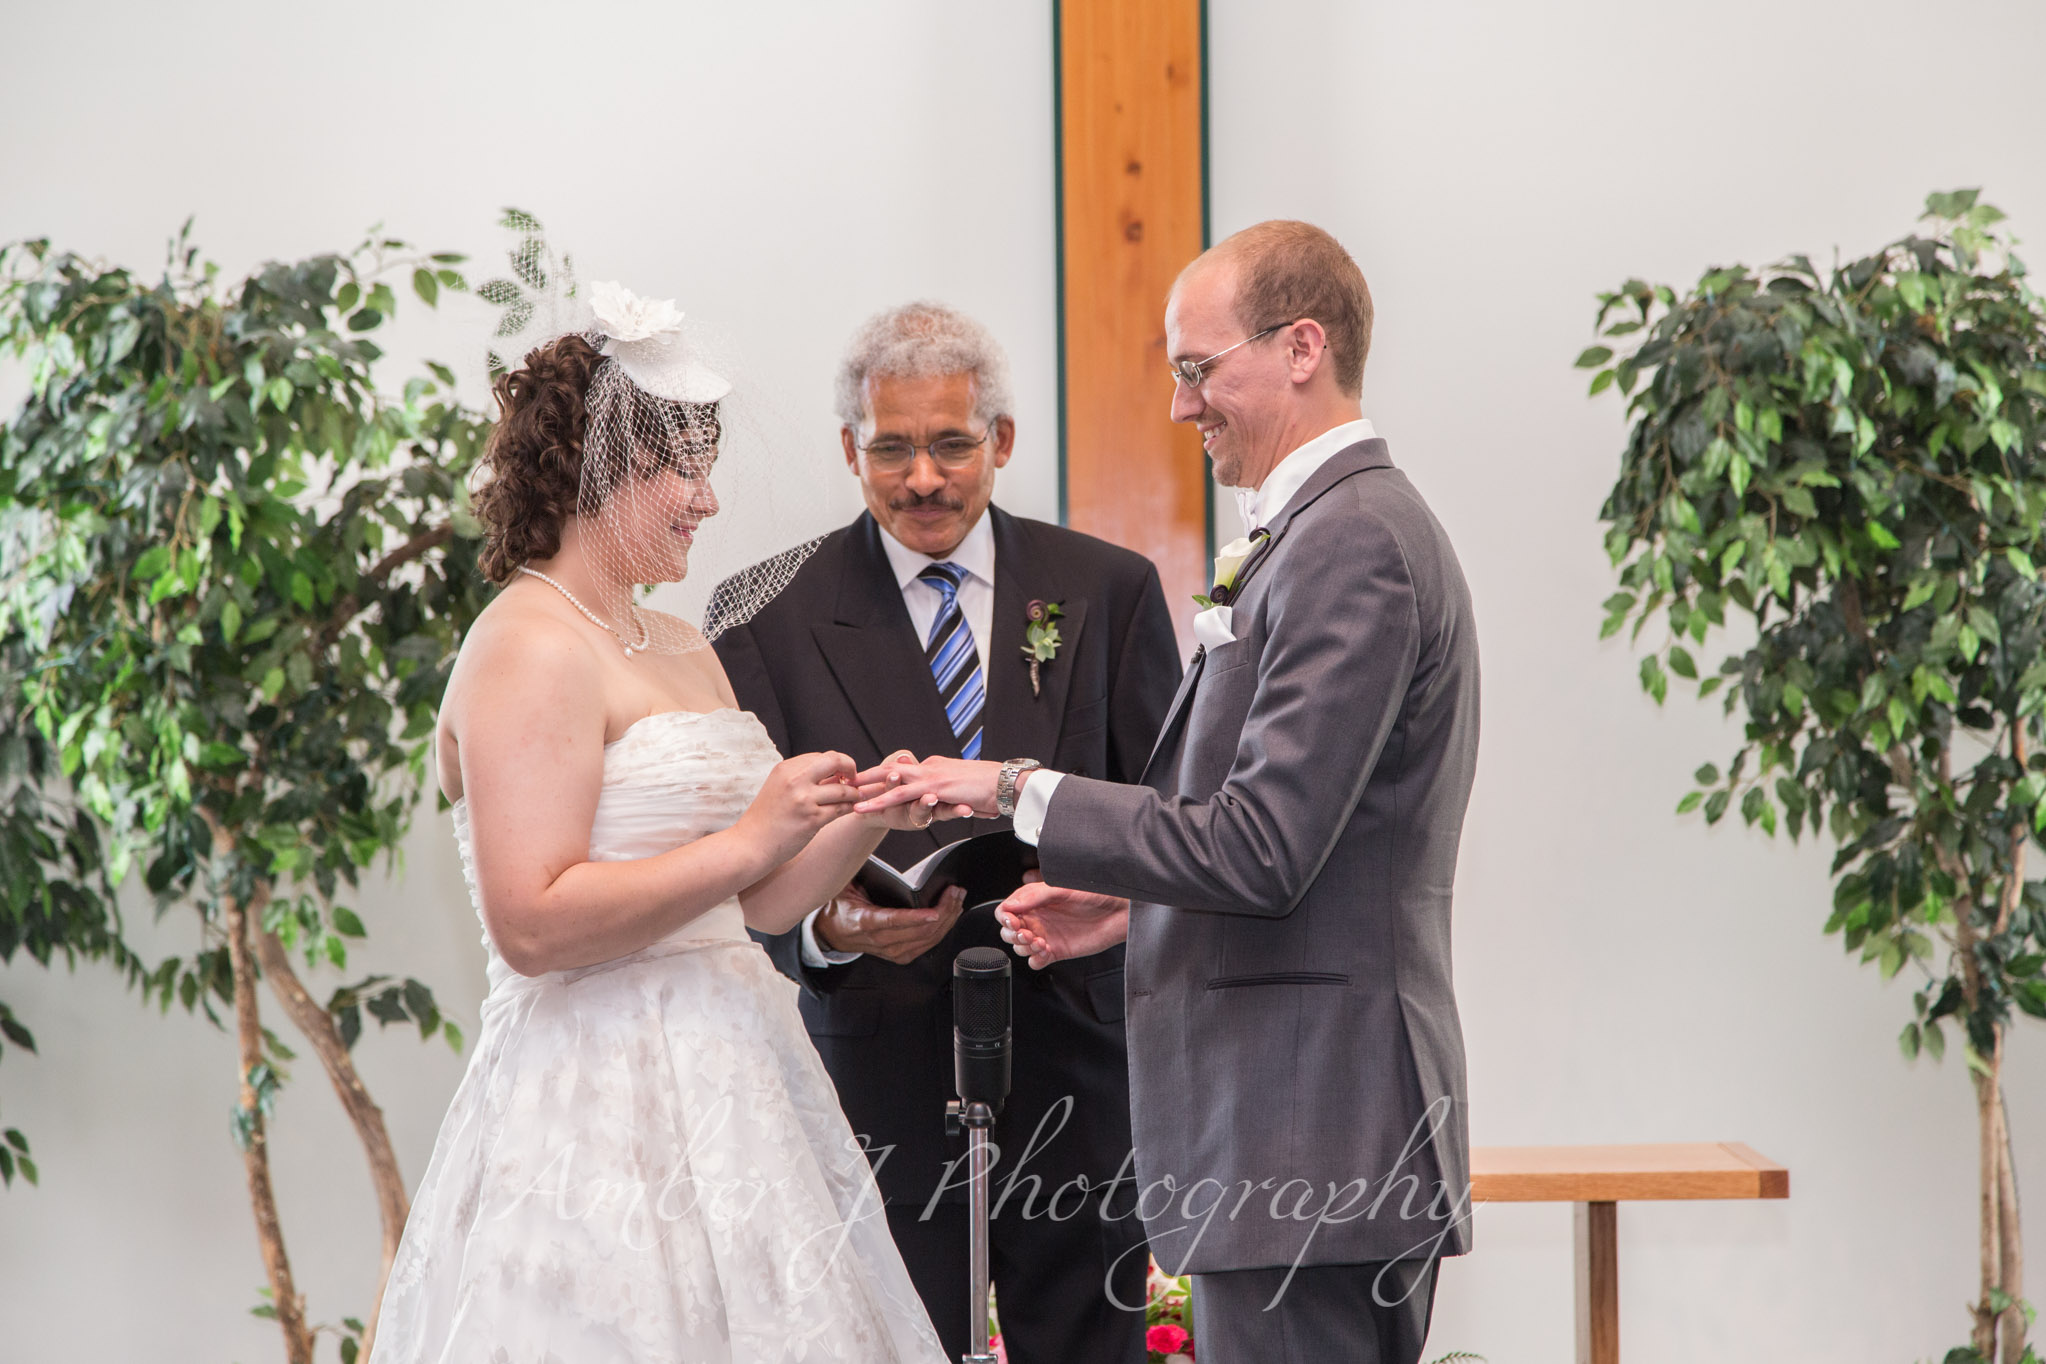 Sommer_Wedding_AmberJphotography_12.jpg